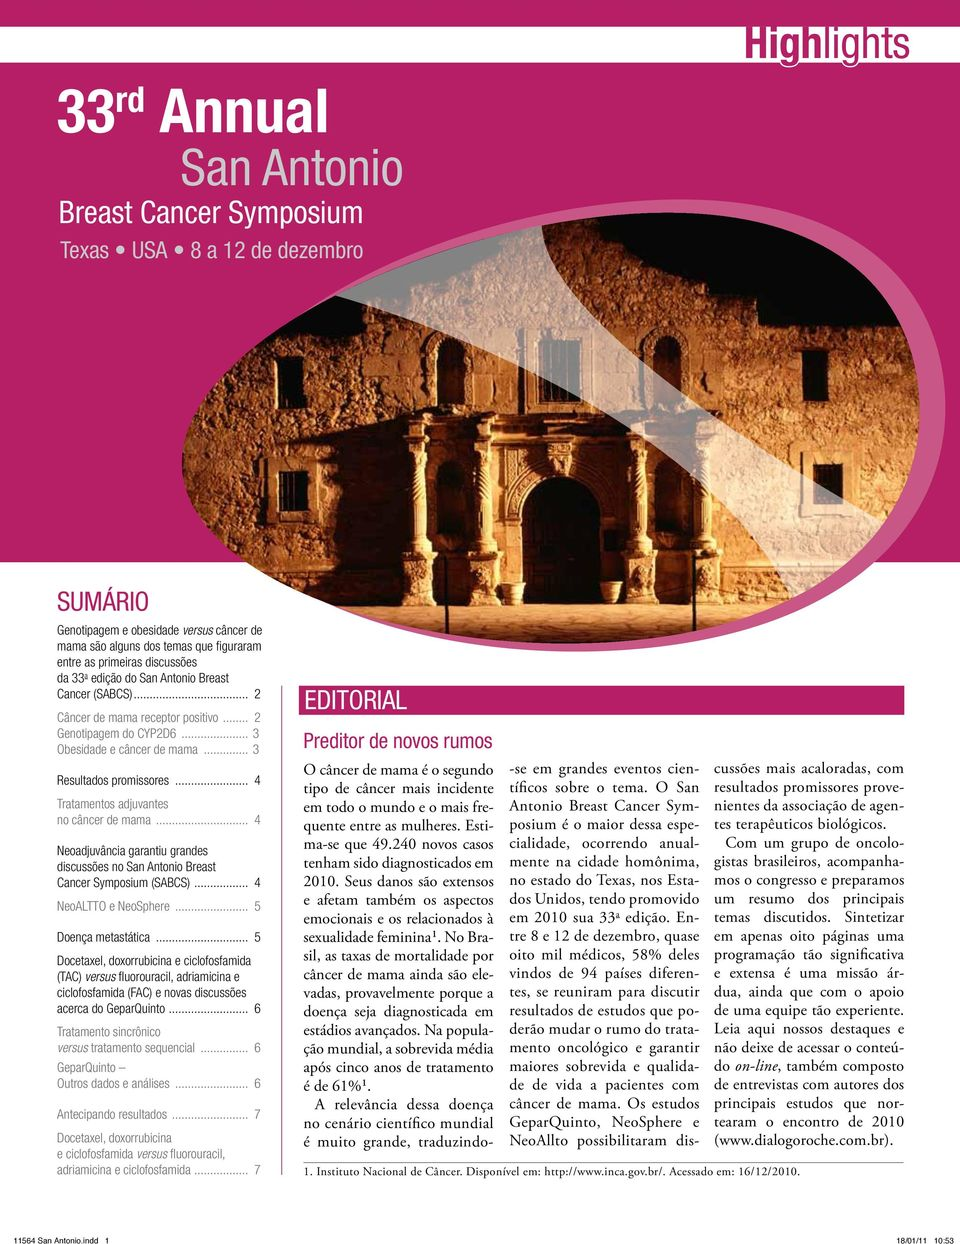 .. 4 Tratamentos adjuvantes no câncer de mama... 4 Neoadjuvância garantiu grandes discussões no San Antonio Breast Cancer Symposium (SABCS)... 4 NeoALTTO e NeoSphere... 5 Doença metastática.